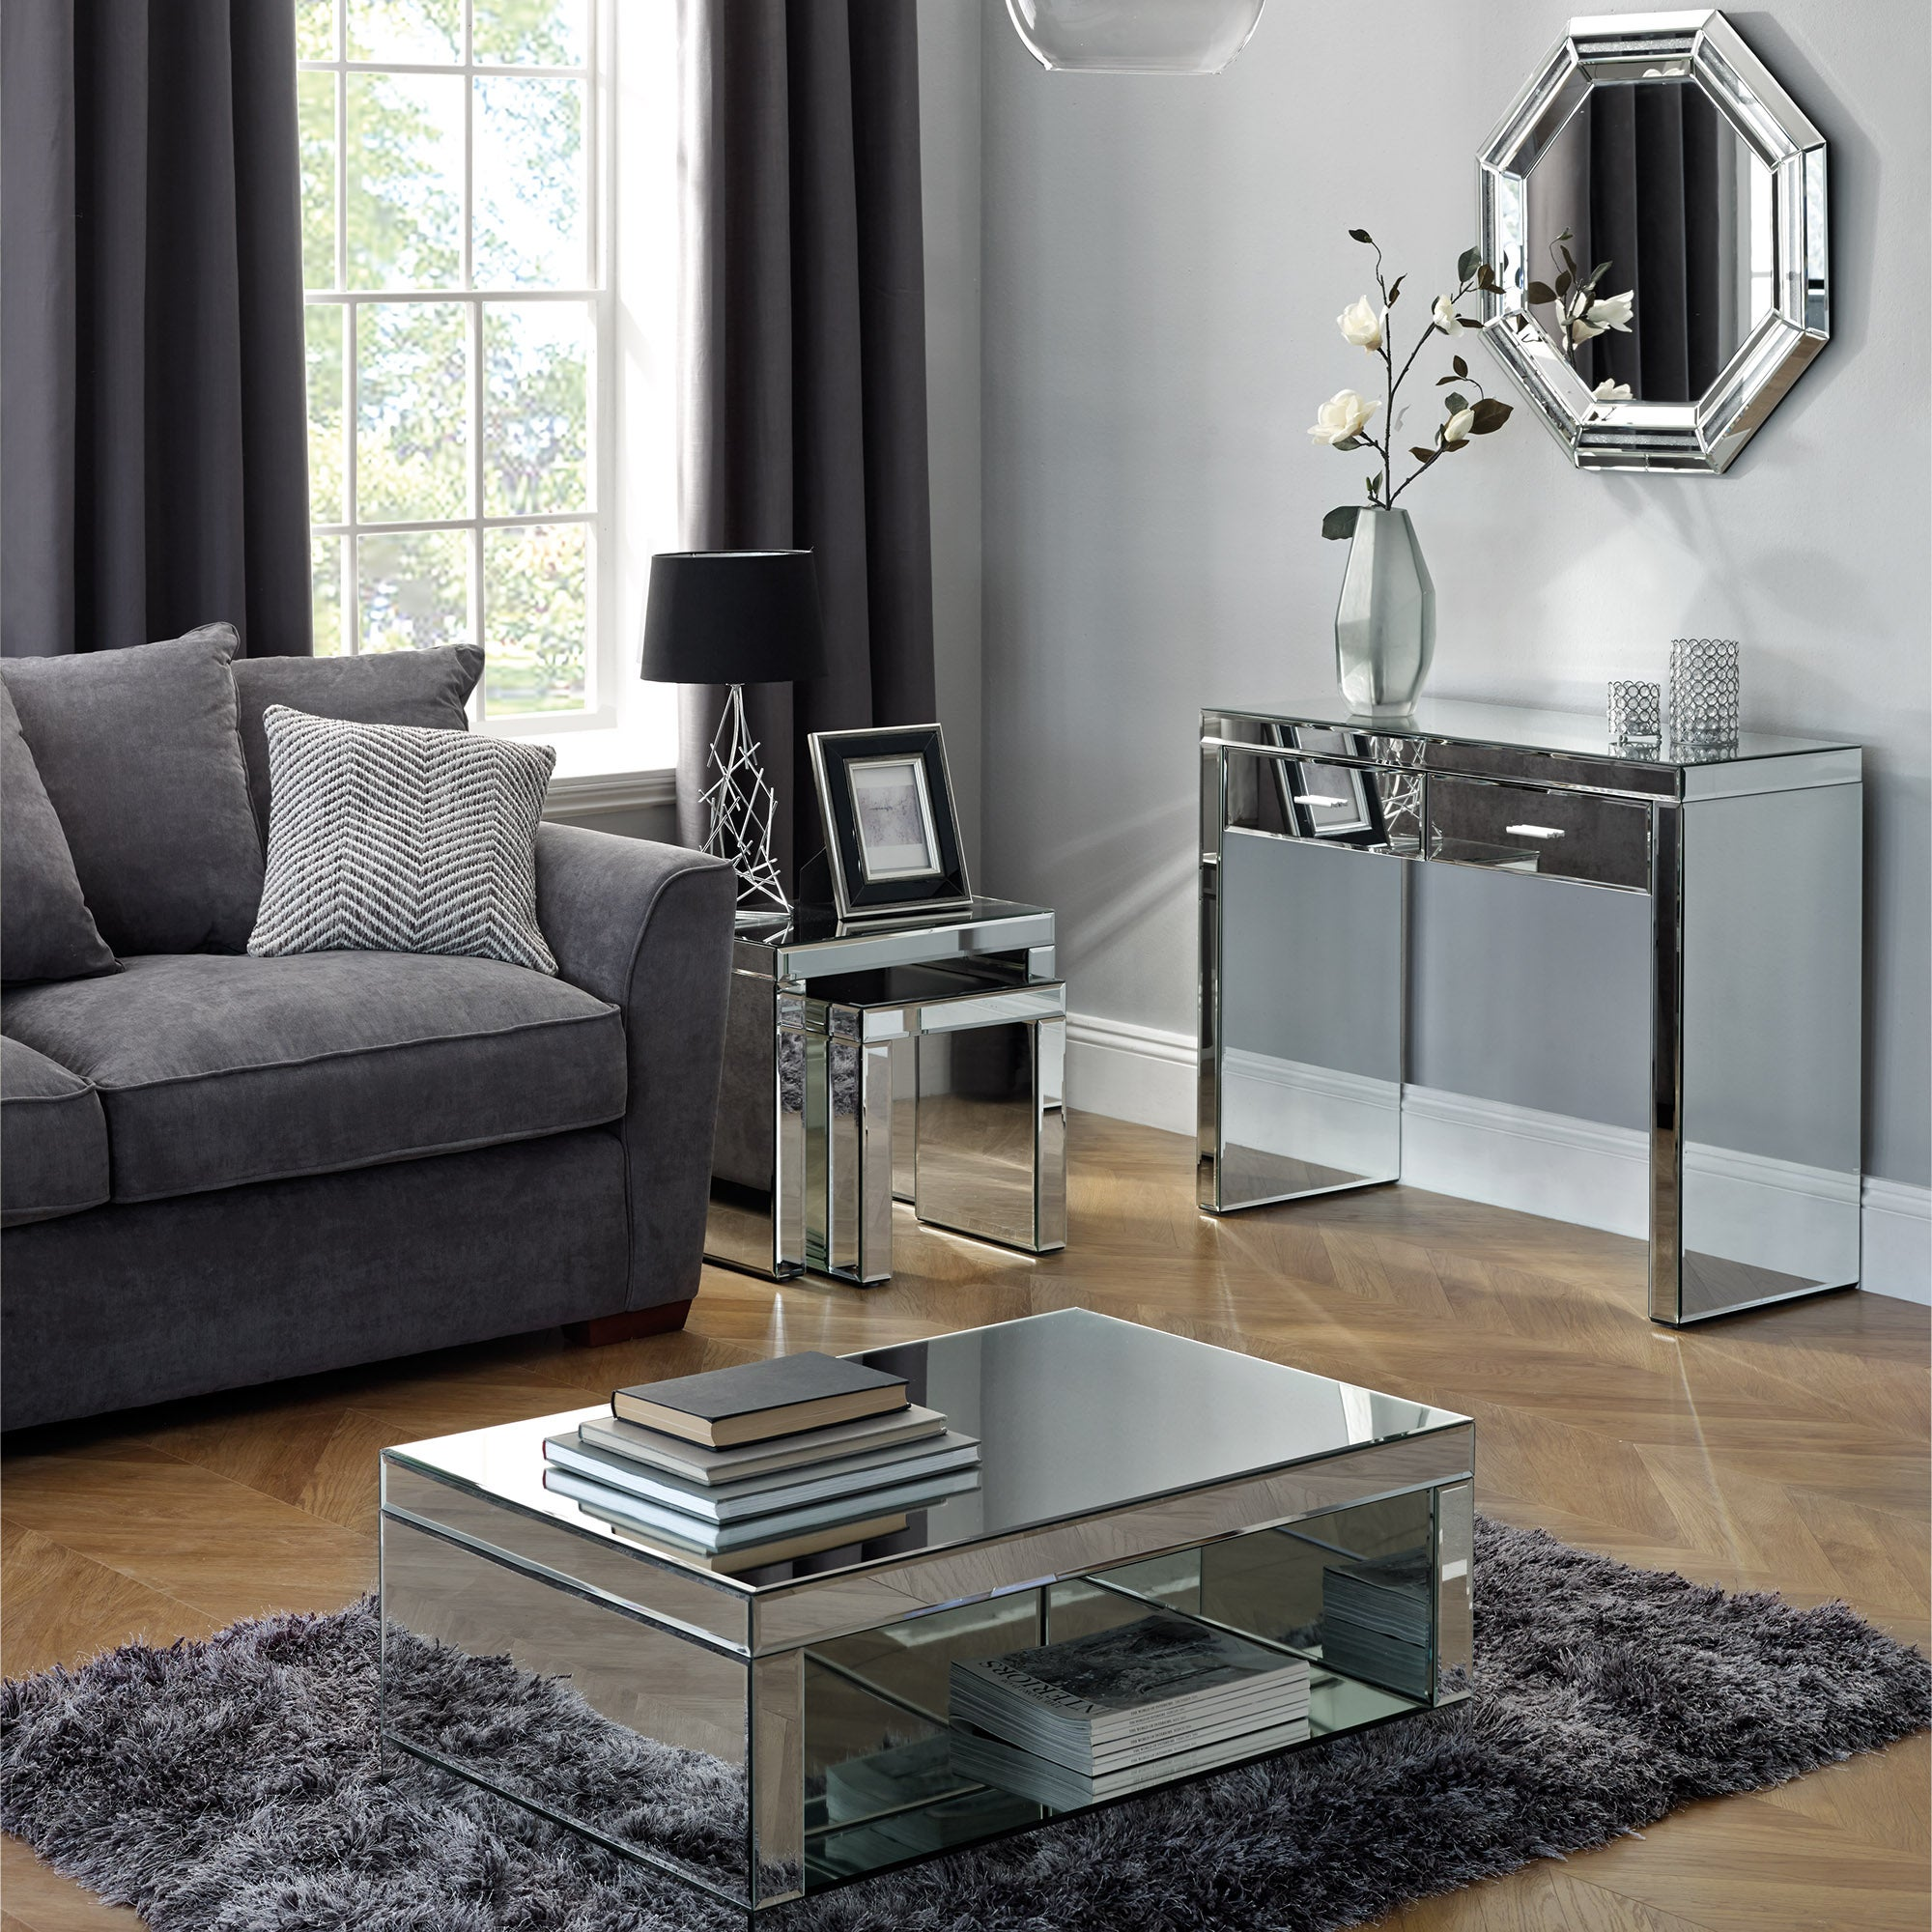 Mirrored tv cabinet living room furniture